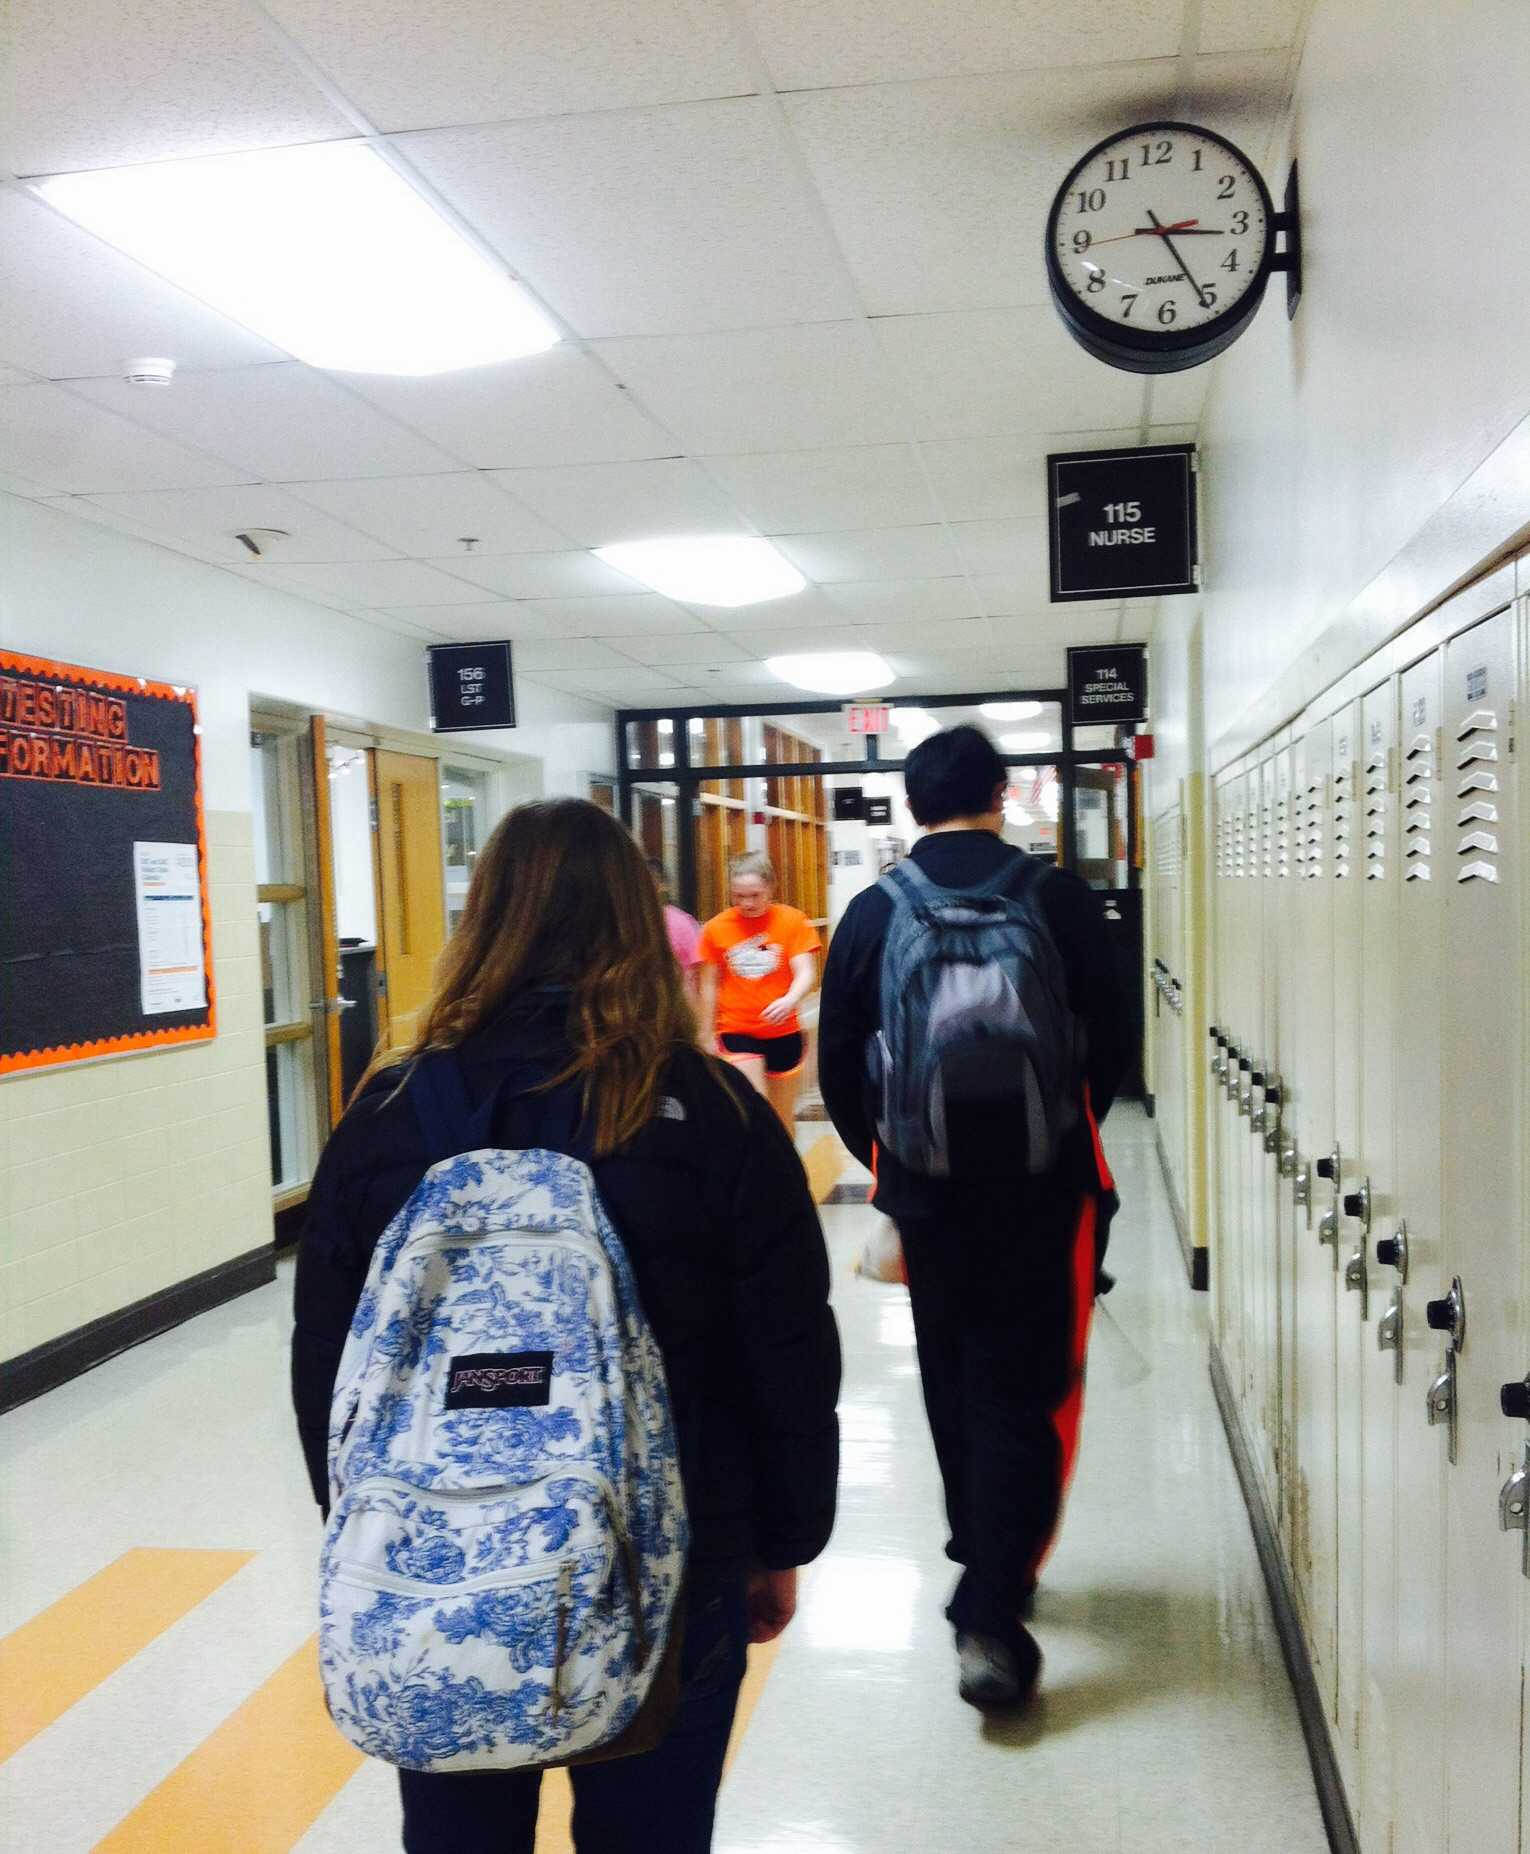 Freshman students Madeline Bartusch and Aaron Chen are seen walking in the hallways, similarly to how students would walk before hearing the music start playing in the halls.